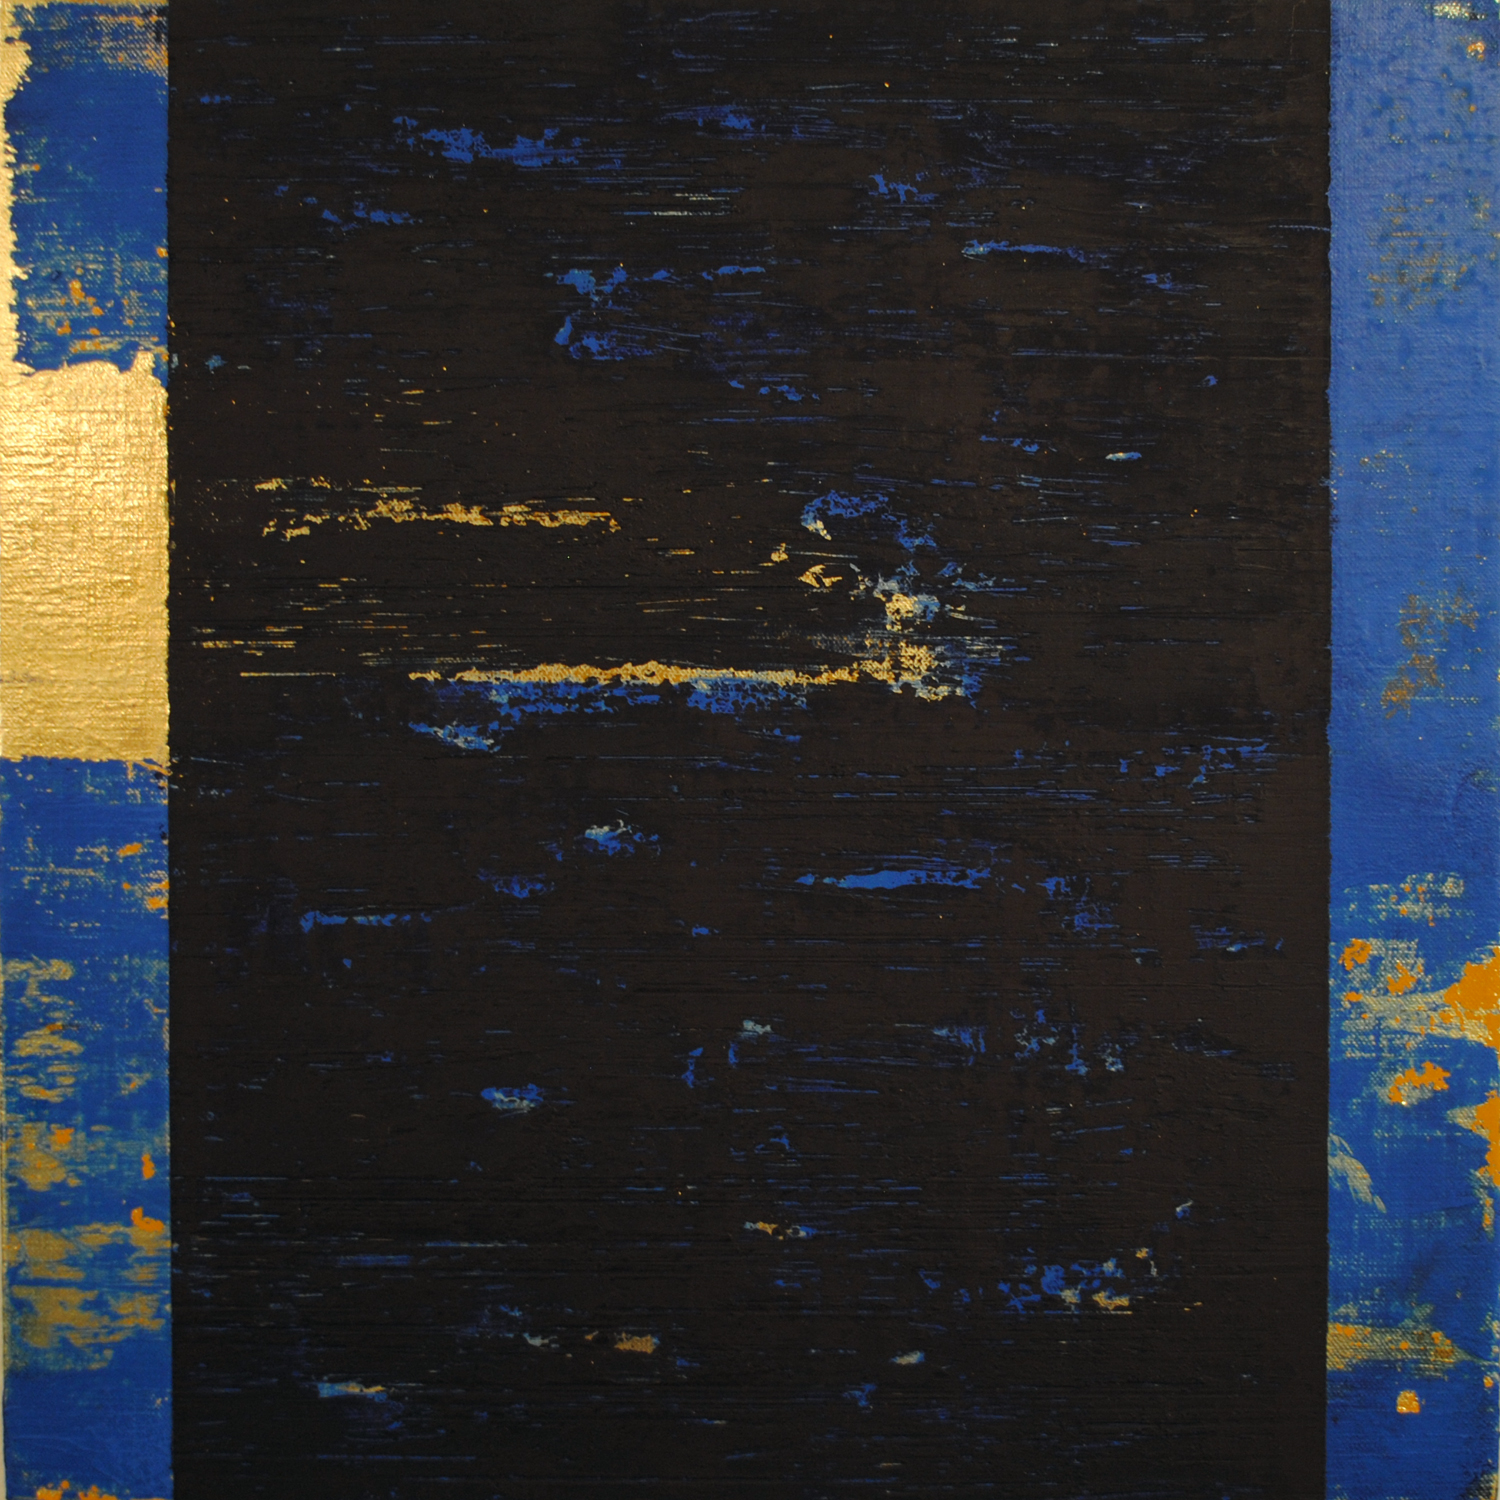 Kind of Blue I, 2015, Oil, acrylic on linen, 16 x 16 inches.